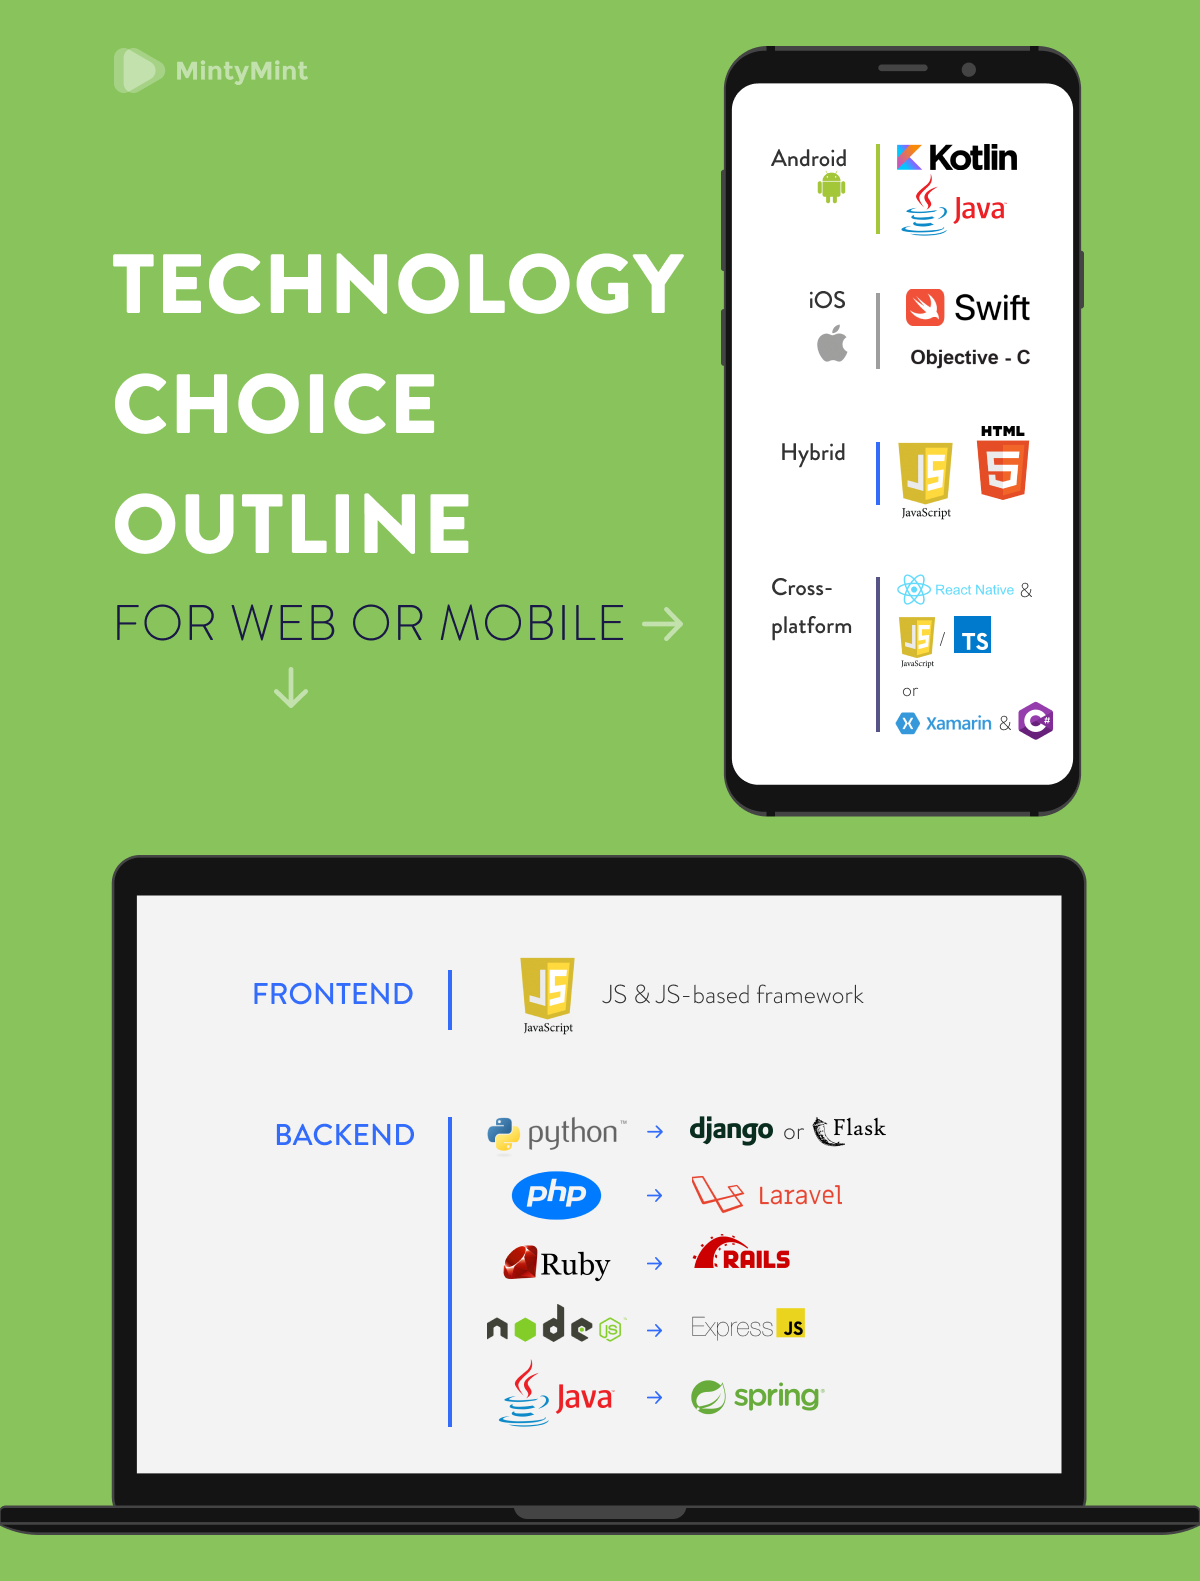 technology choice outline (how to choose the right tech stack)